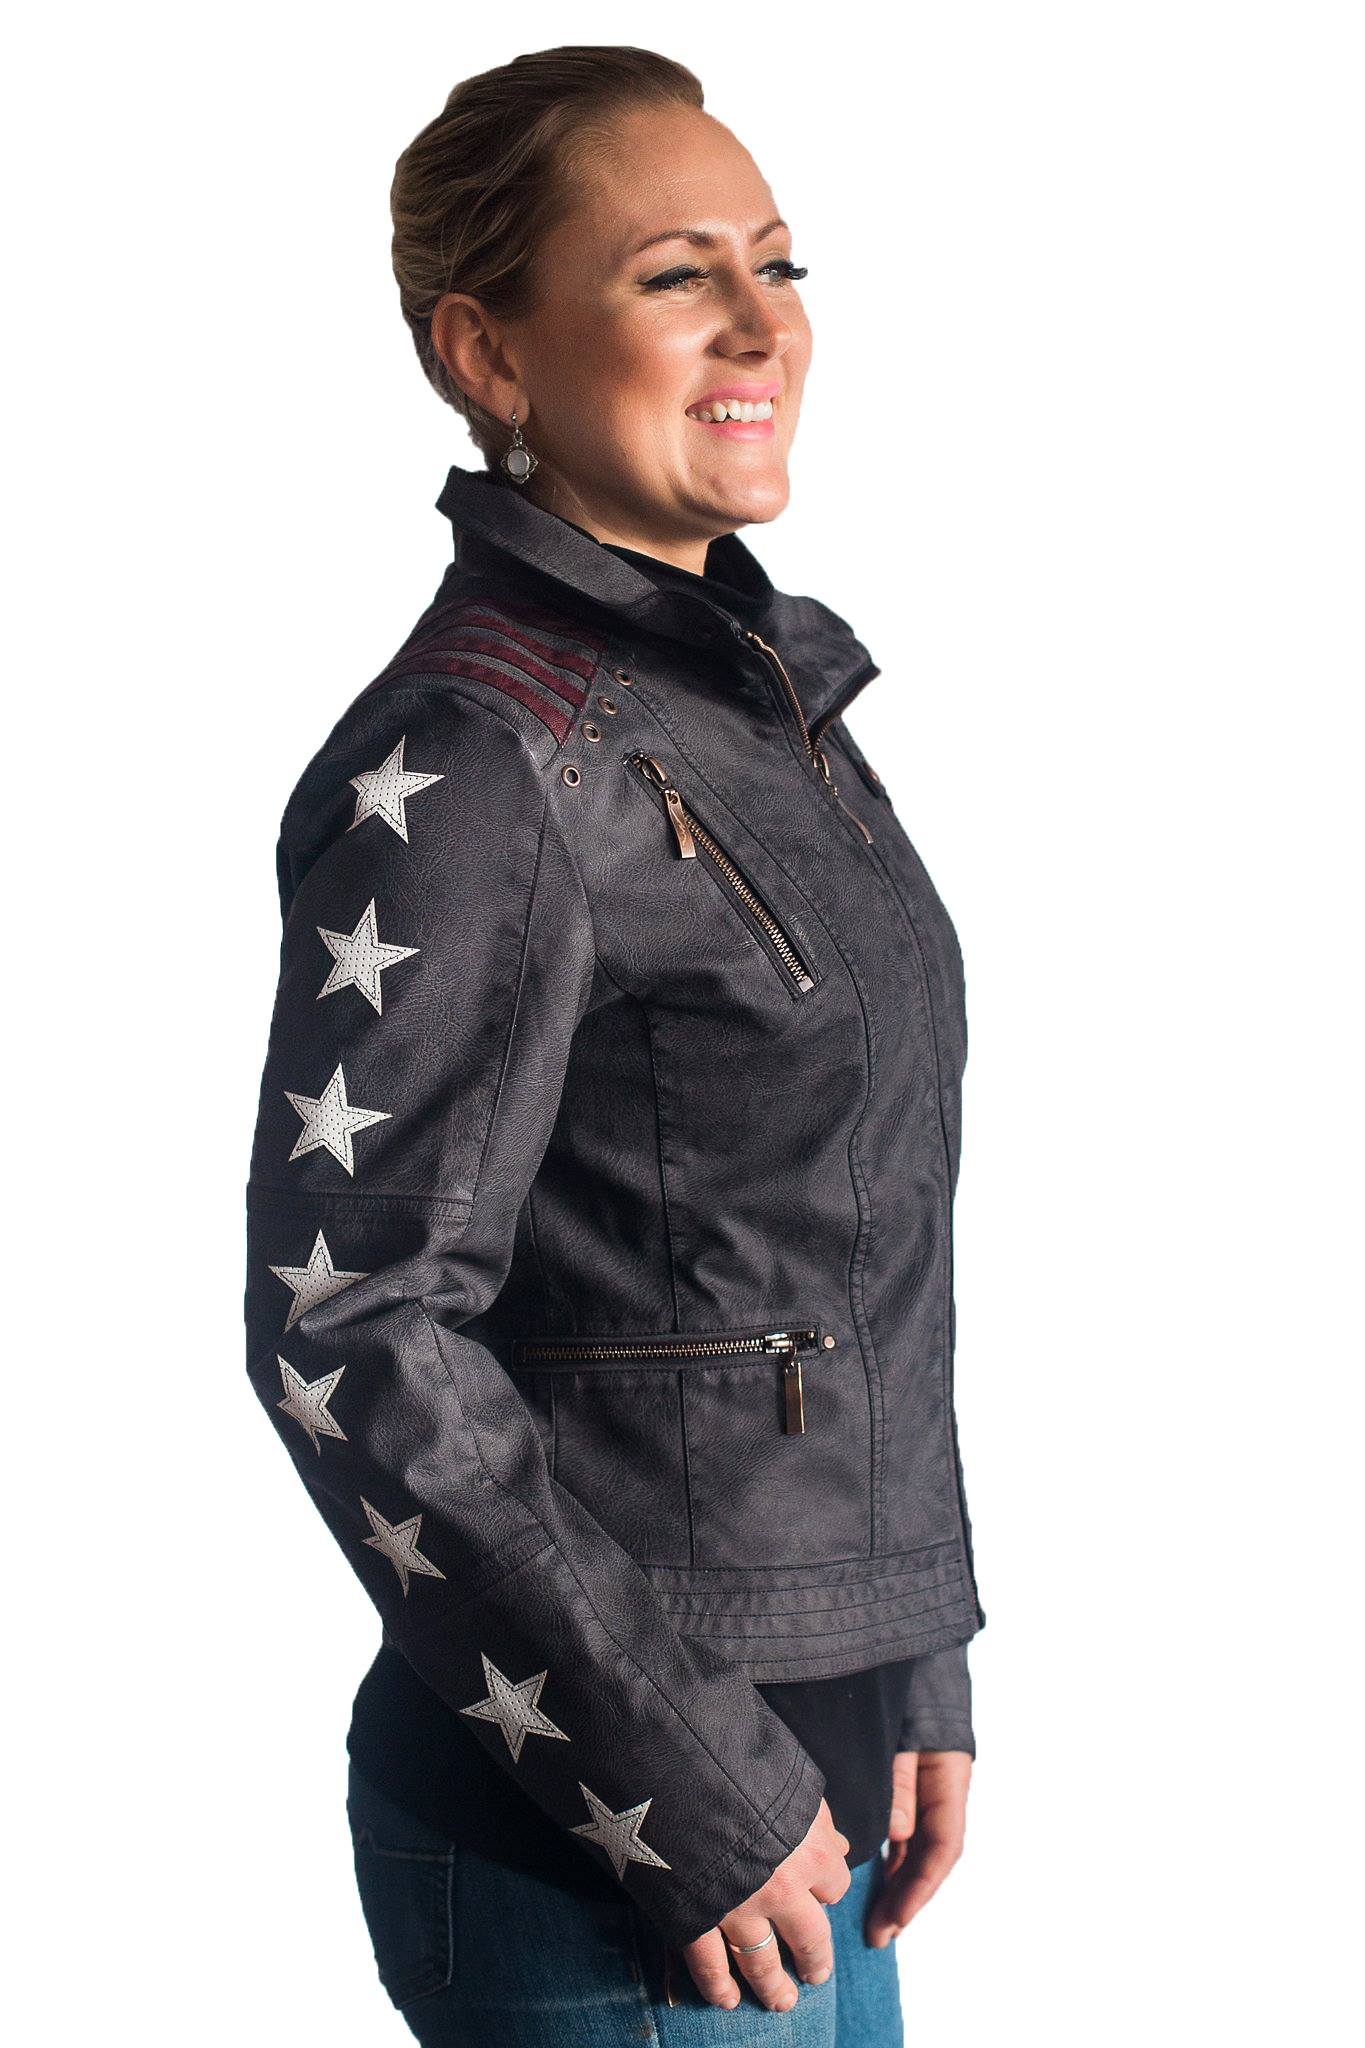 Montanaco Vintage Look Racing  Jacket w/ Stars & Stripes in Charcoal